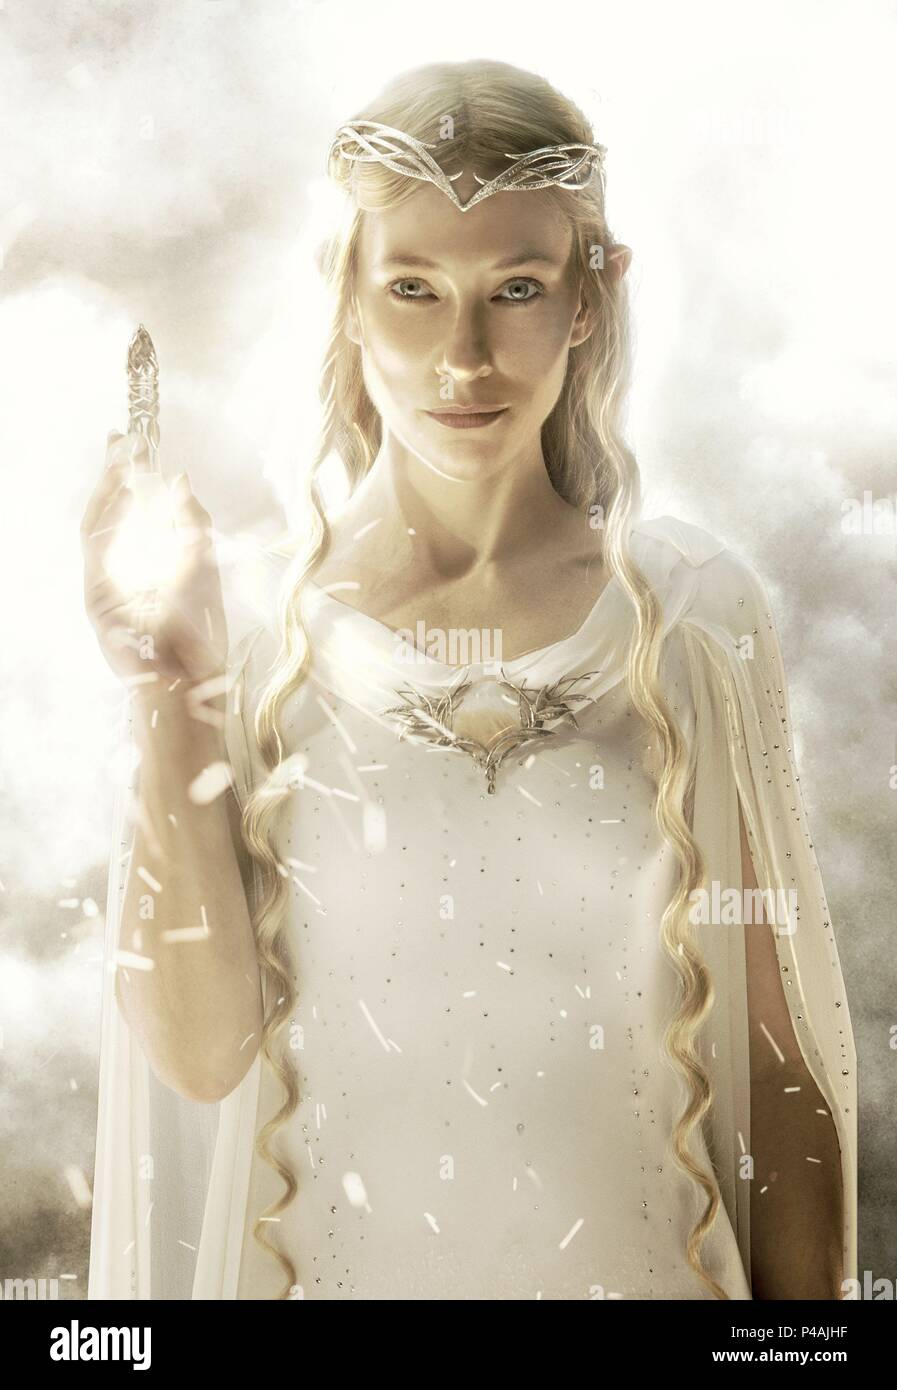 Original Film Title: HOBBIT, THE: AN UNEXPECTED JOURNEY.  English Title: HOBBIT, THE: AN UNEXPECTED JOURNEY.  Film Director: PETER JACKSON.  Year: 2012.  Stars: CATE BLANCHETT. Credit: METRO GOLDWYN MAYER / Album Stock Photo